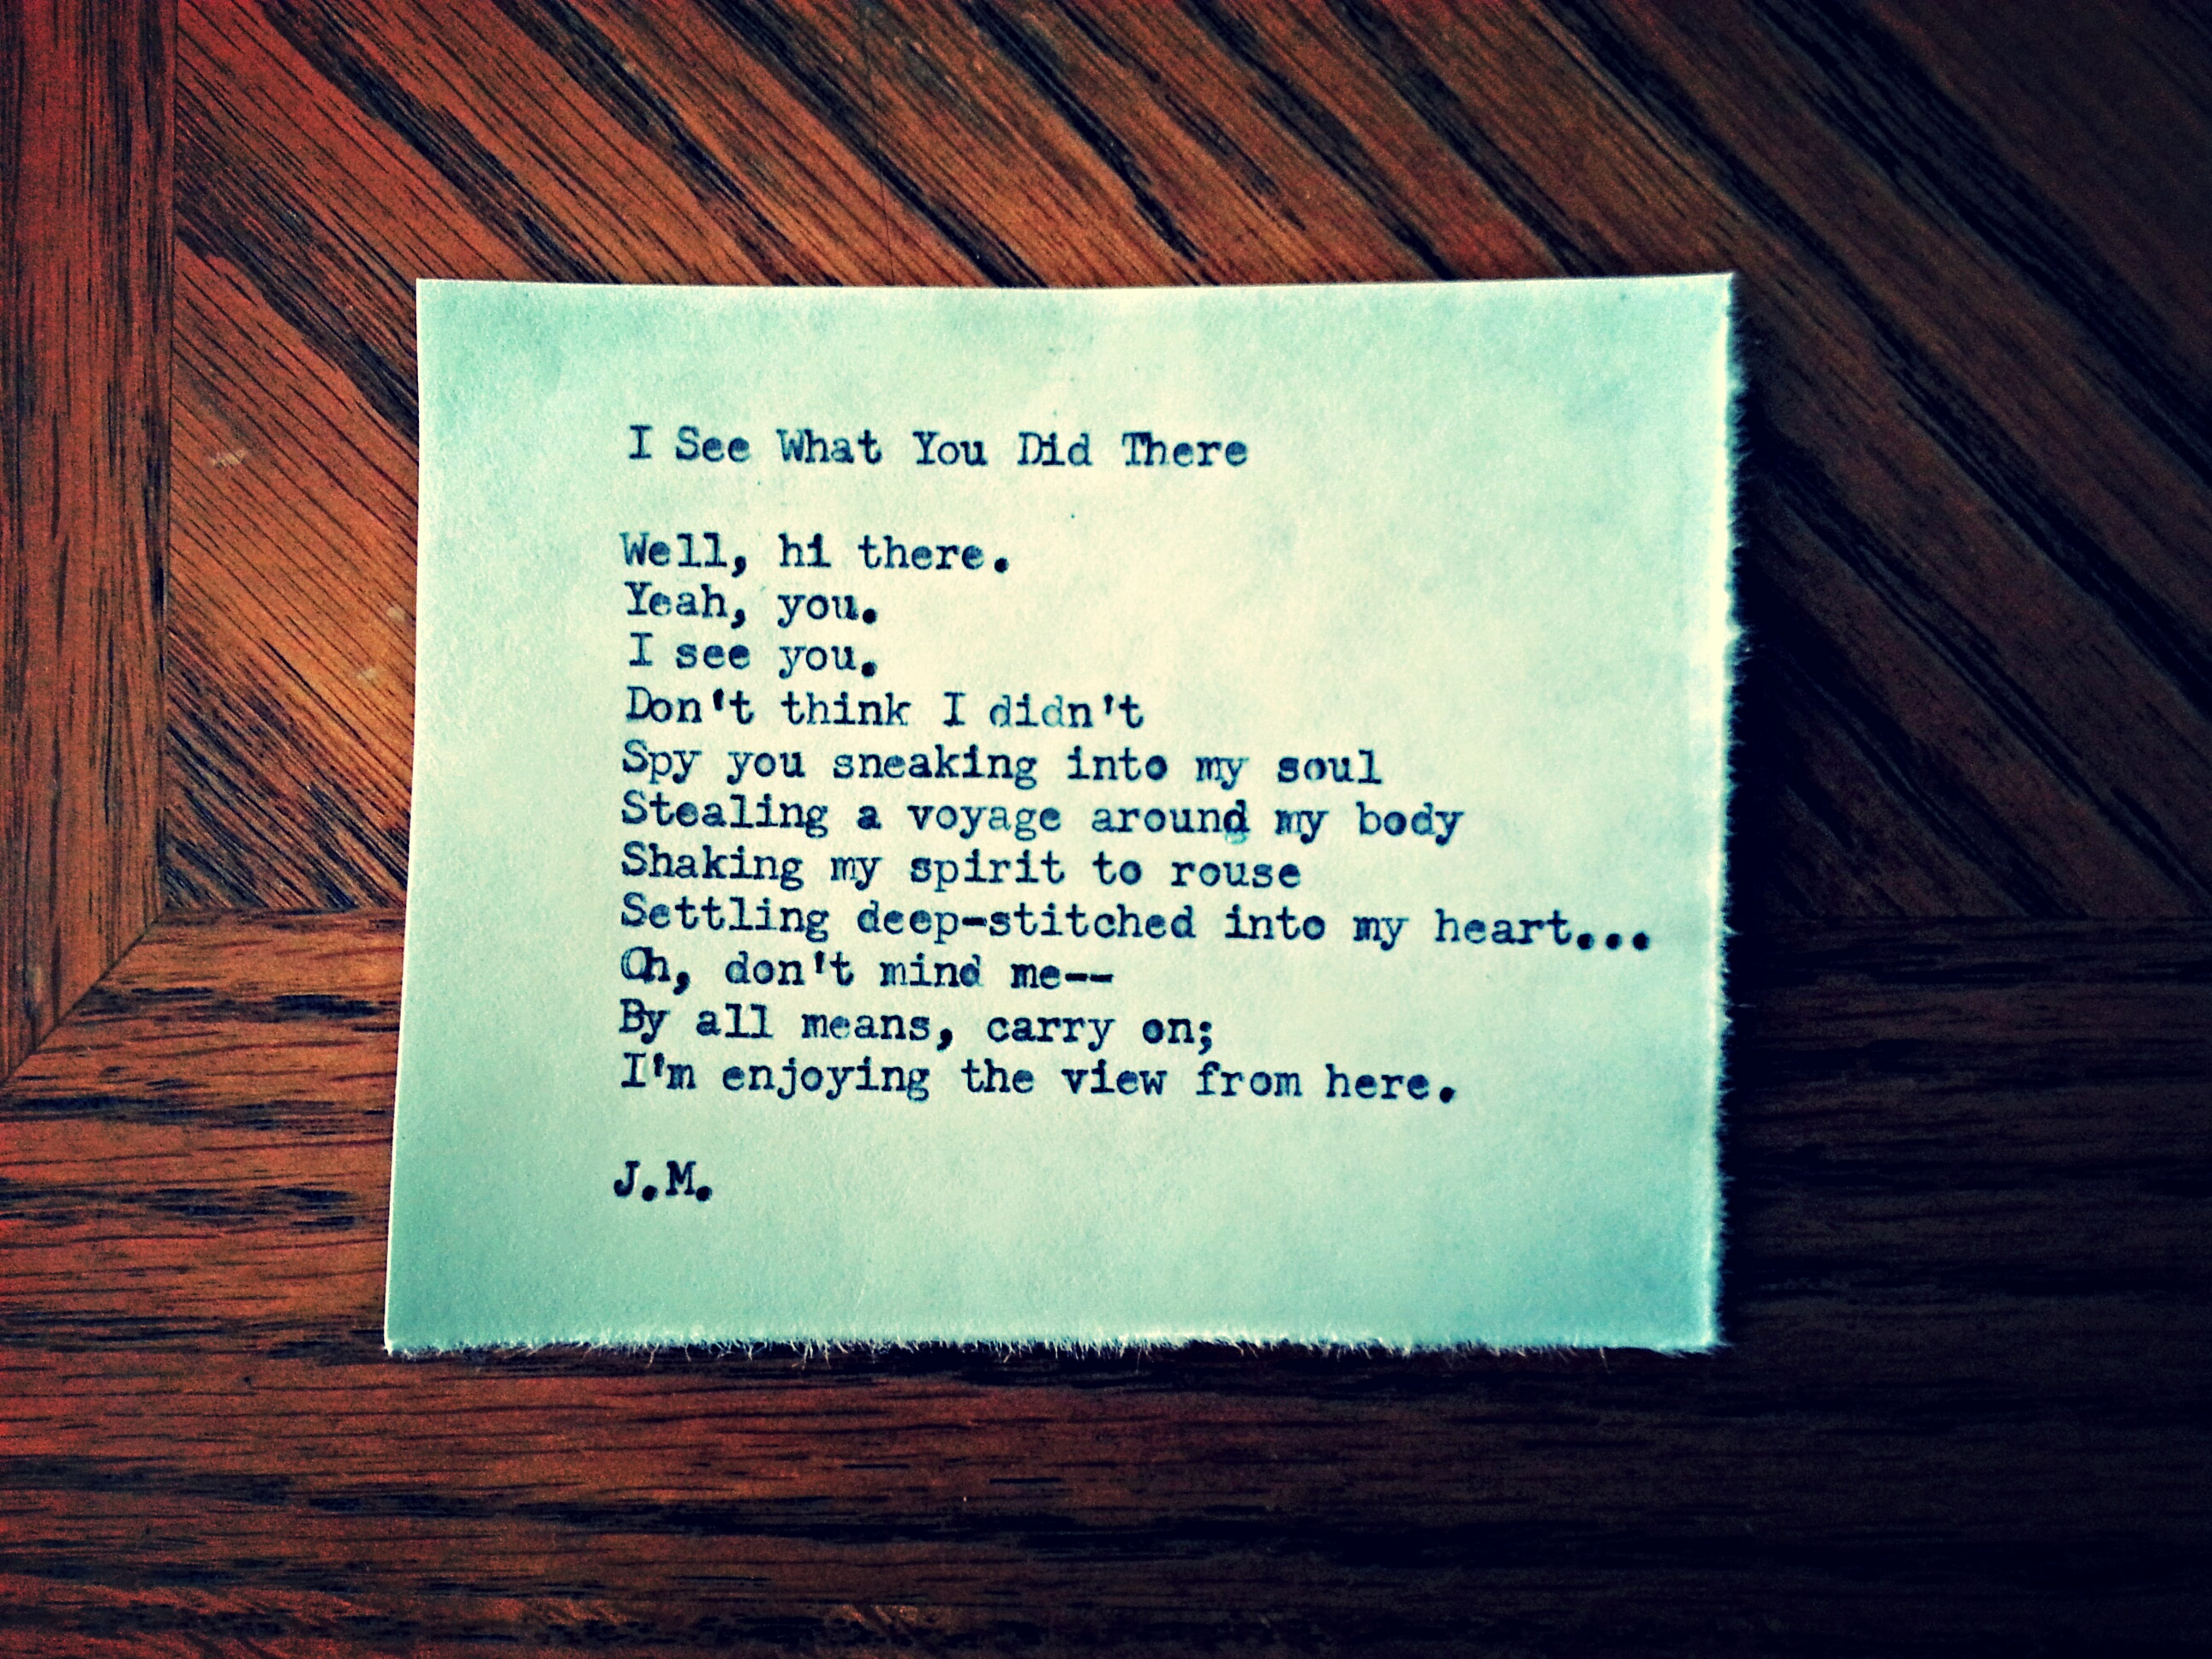 I See What You Did There (a poem)